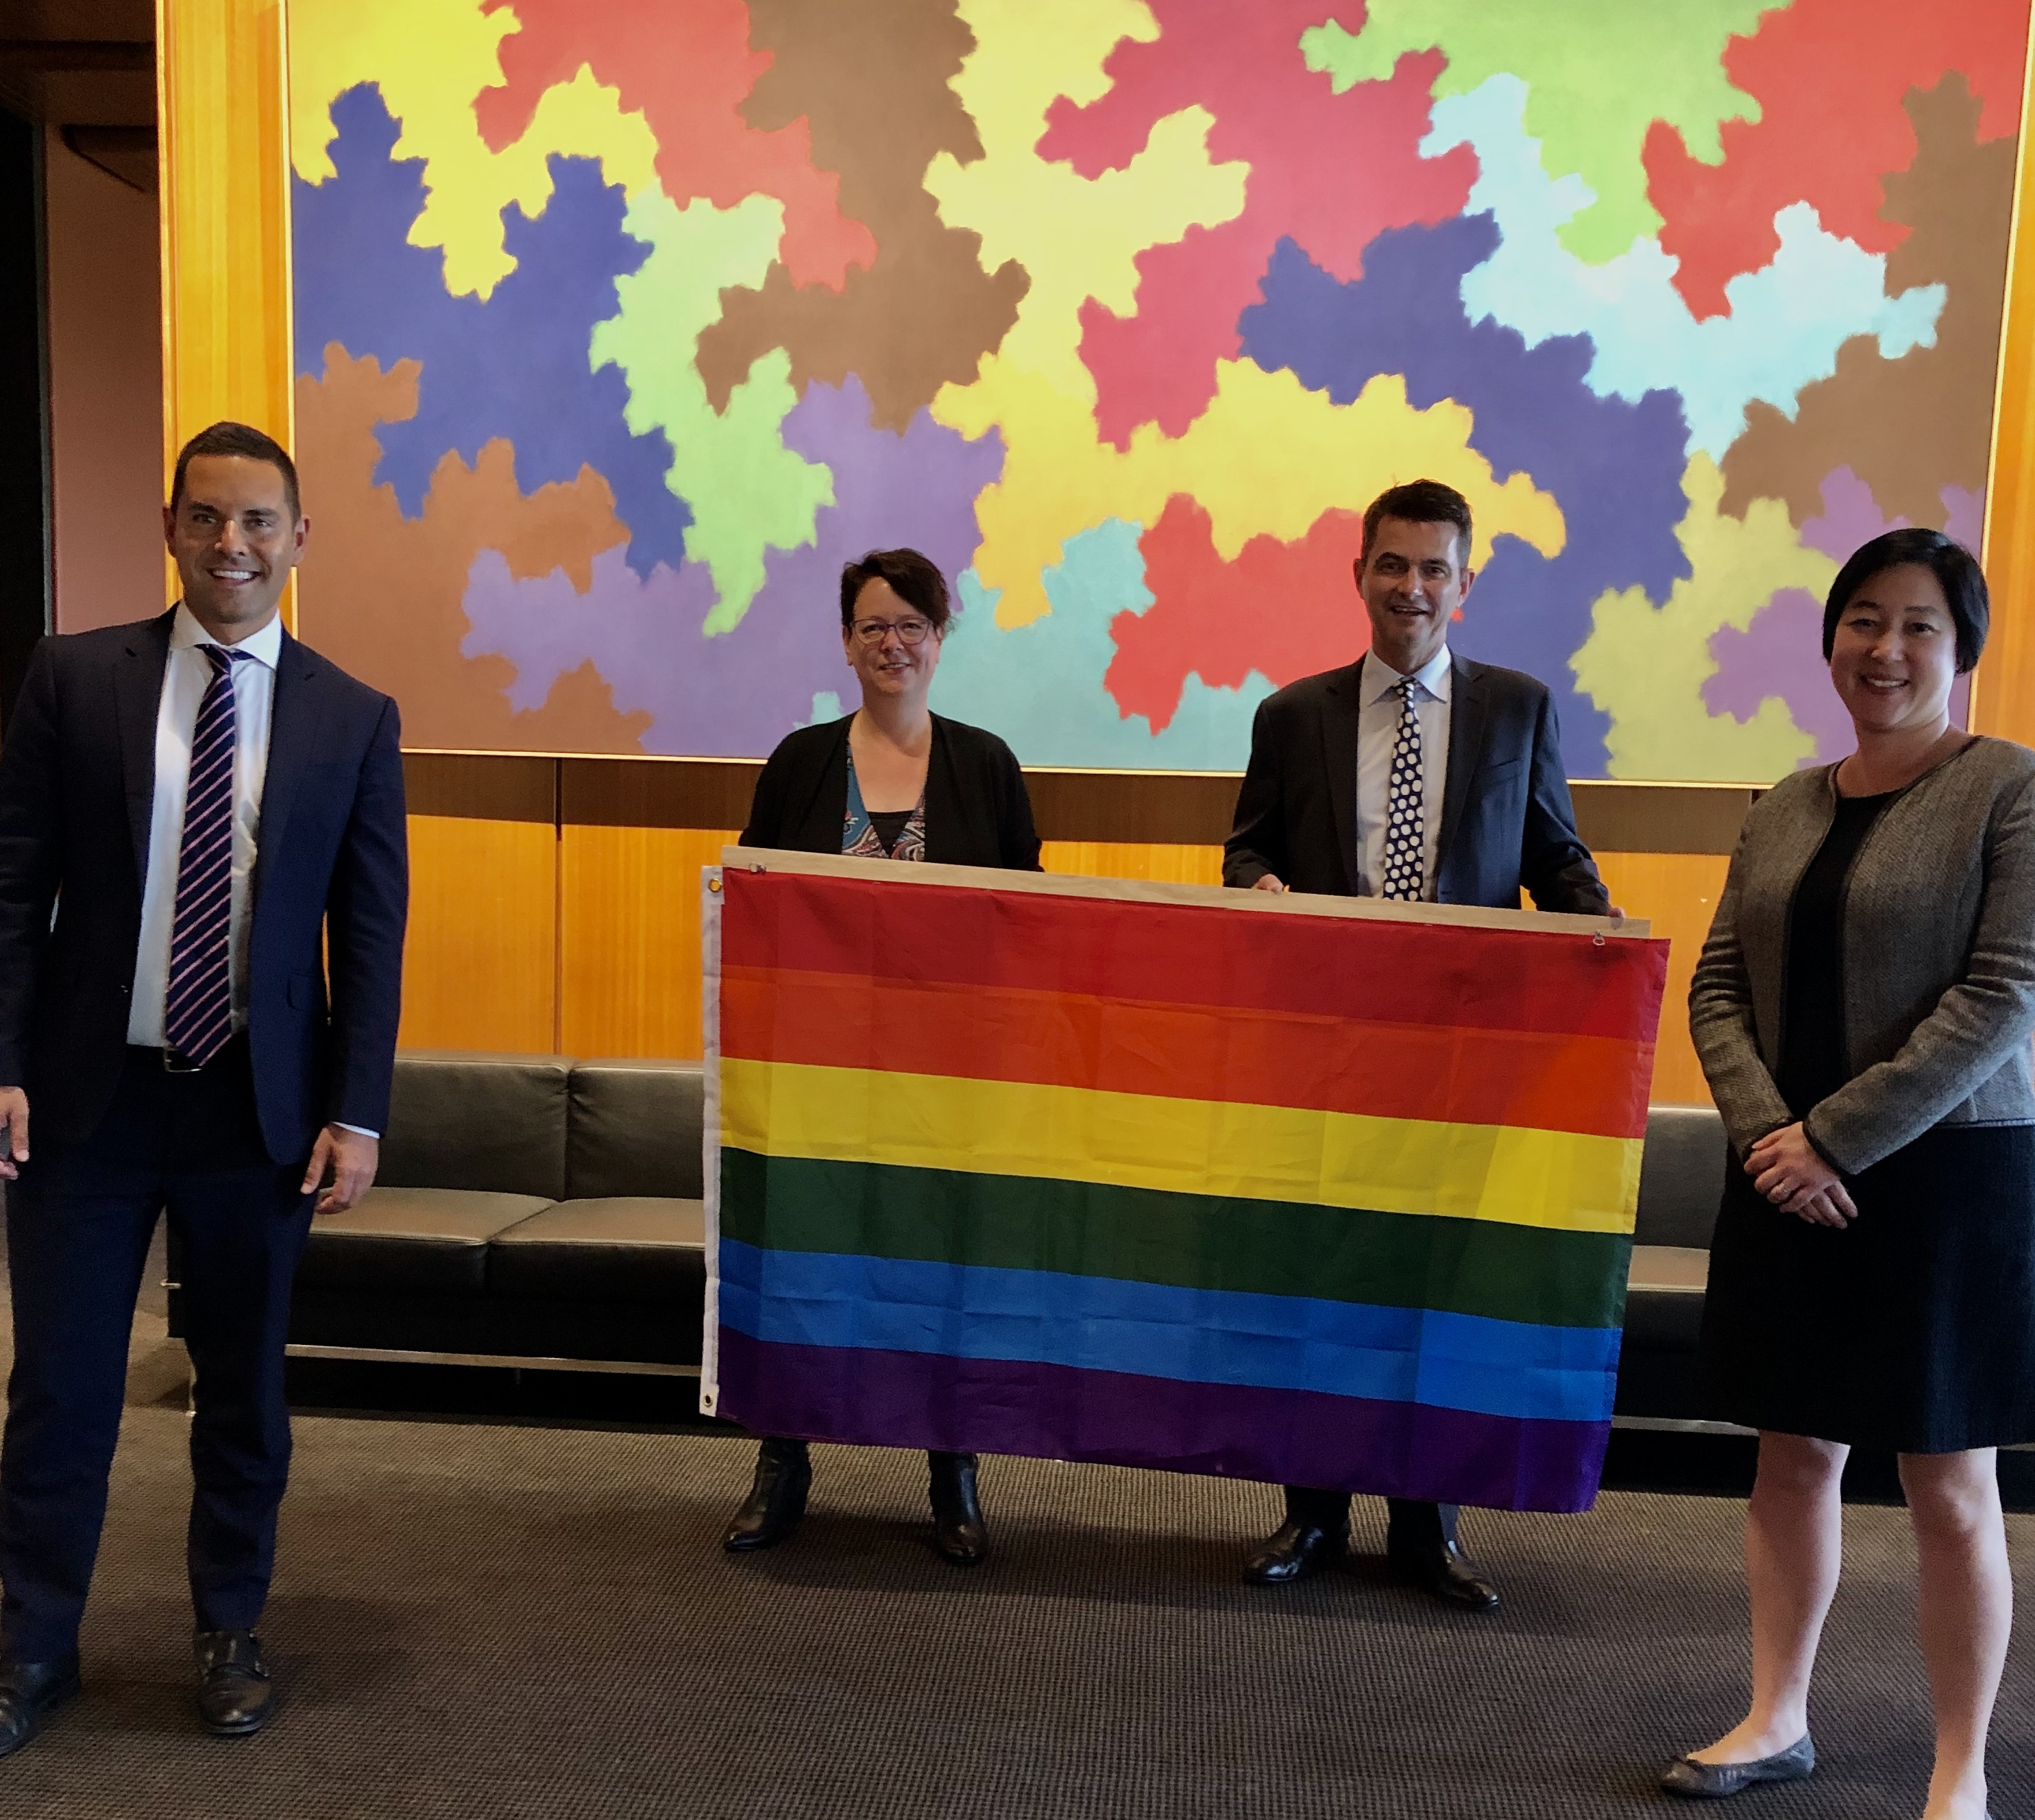 Parliamentary_Friends_of_the_LGBTQI_Community_and_Sydney_World_Pride_Exec_Photo.jpg